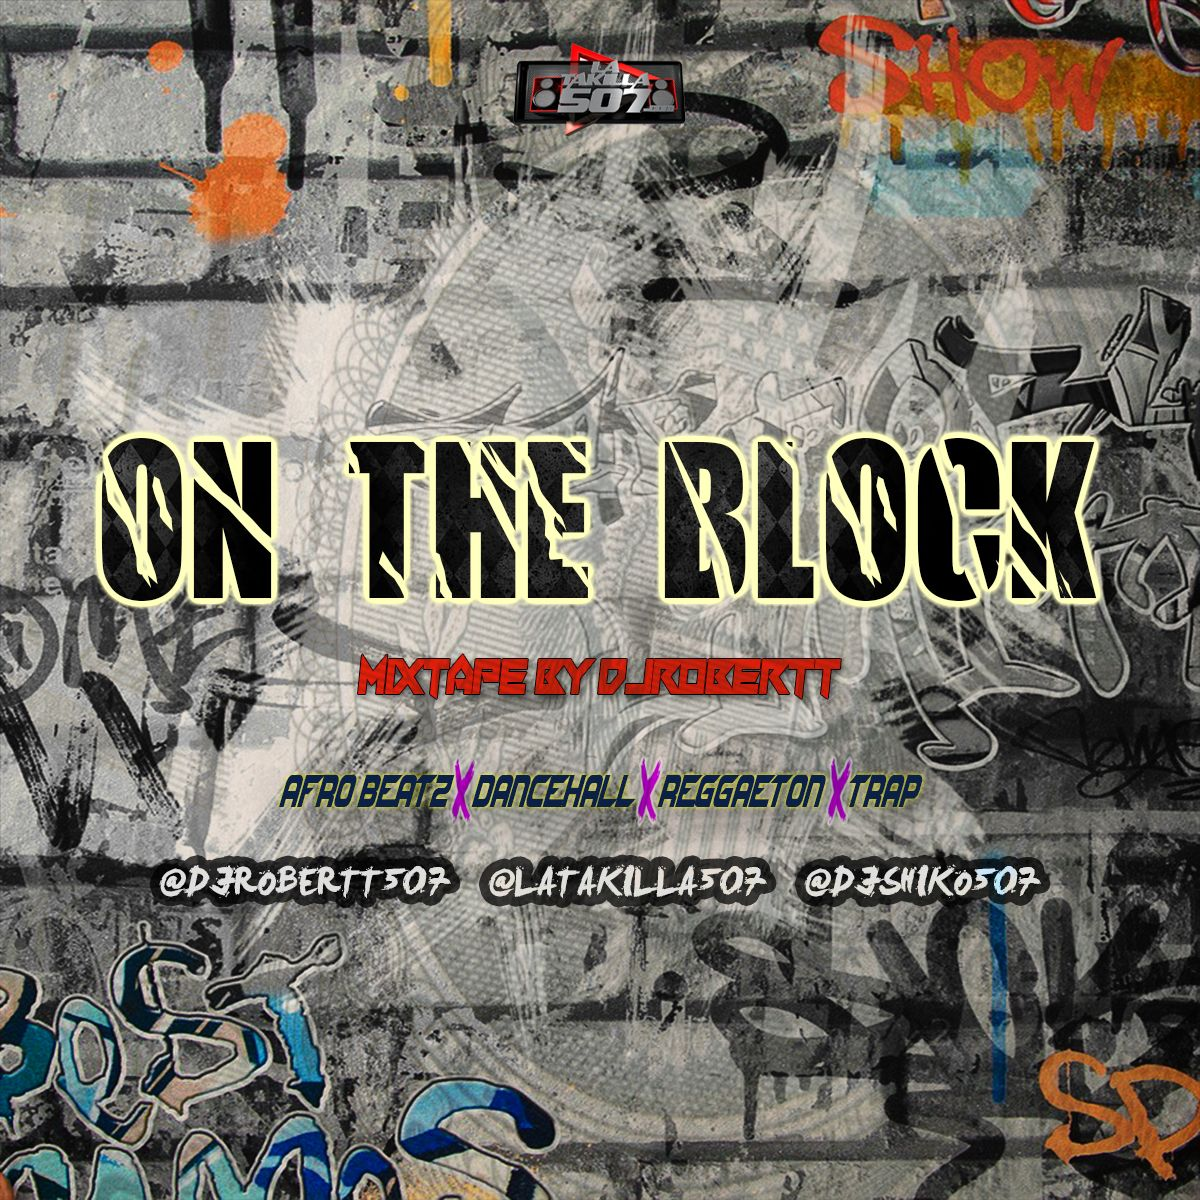 On The Block Mixtape - Dj Robertt507.mp3